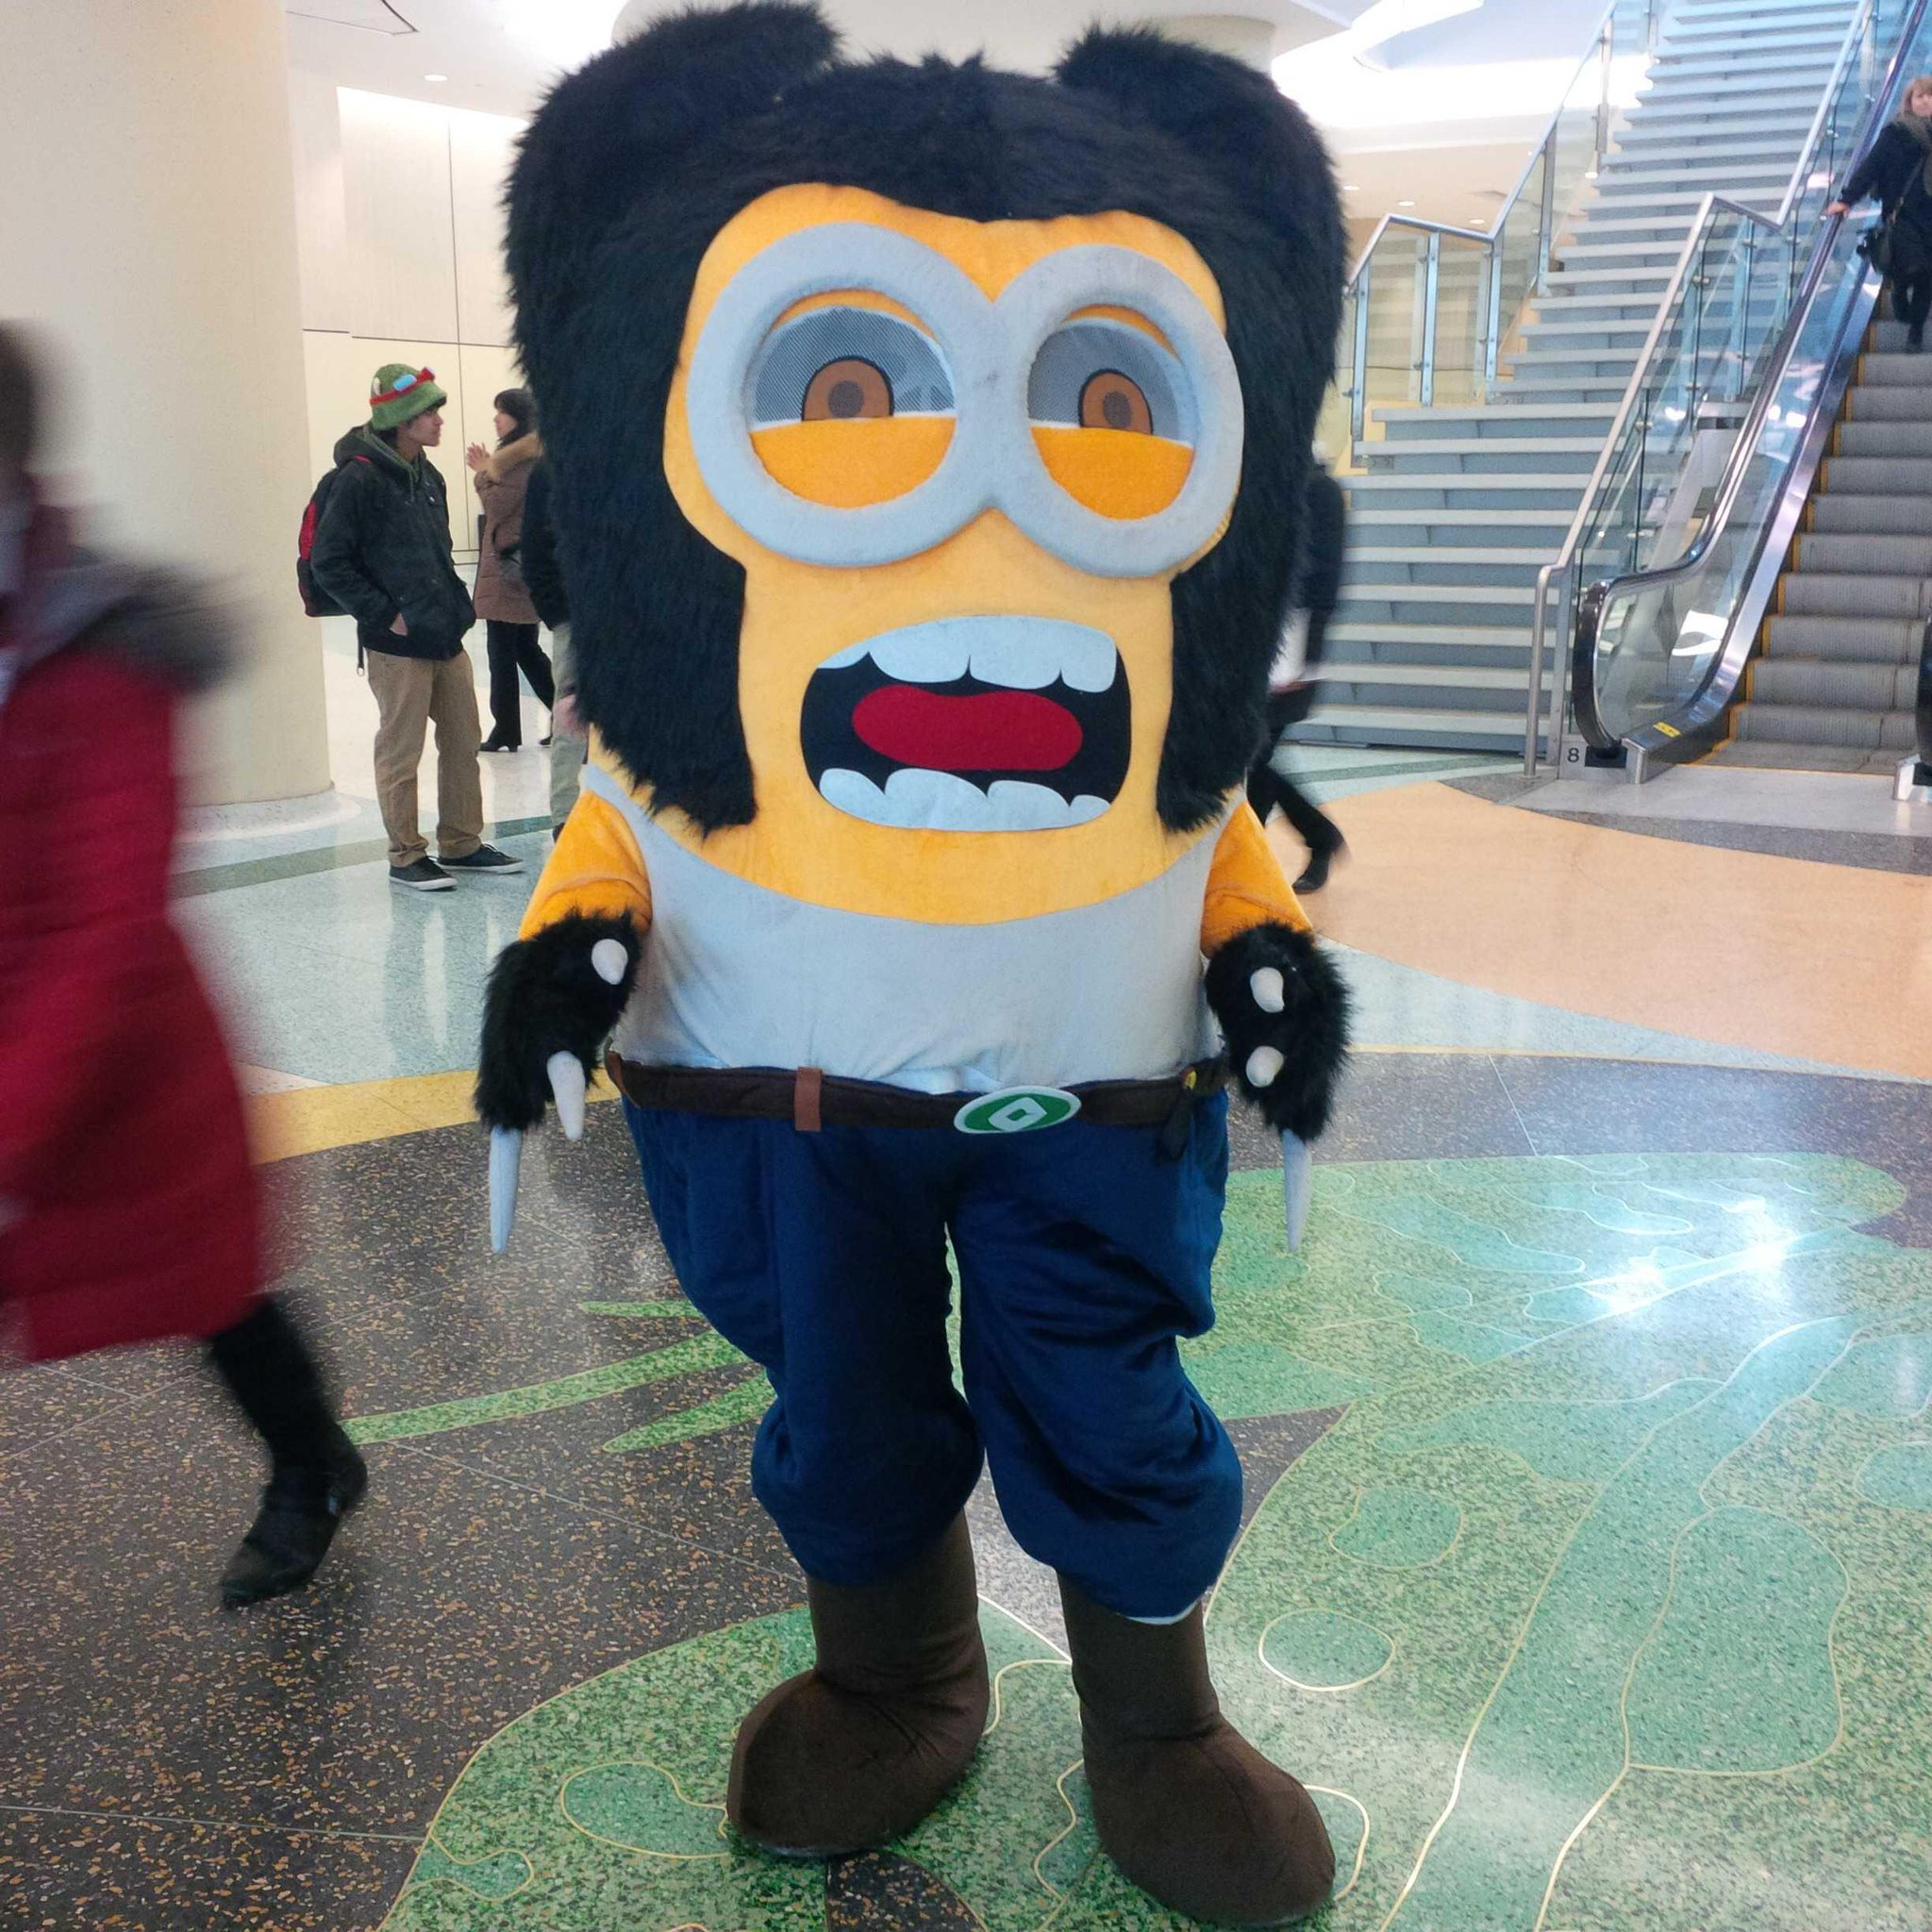 Playing the invasive paparazzo with Wolverminion! http://t.co/nGn9gfx9zp